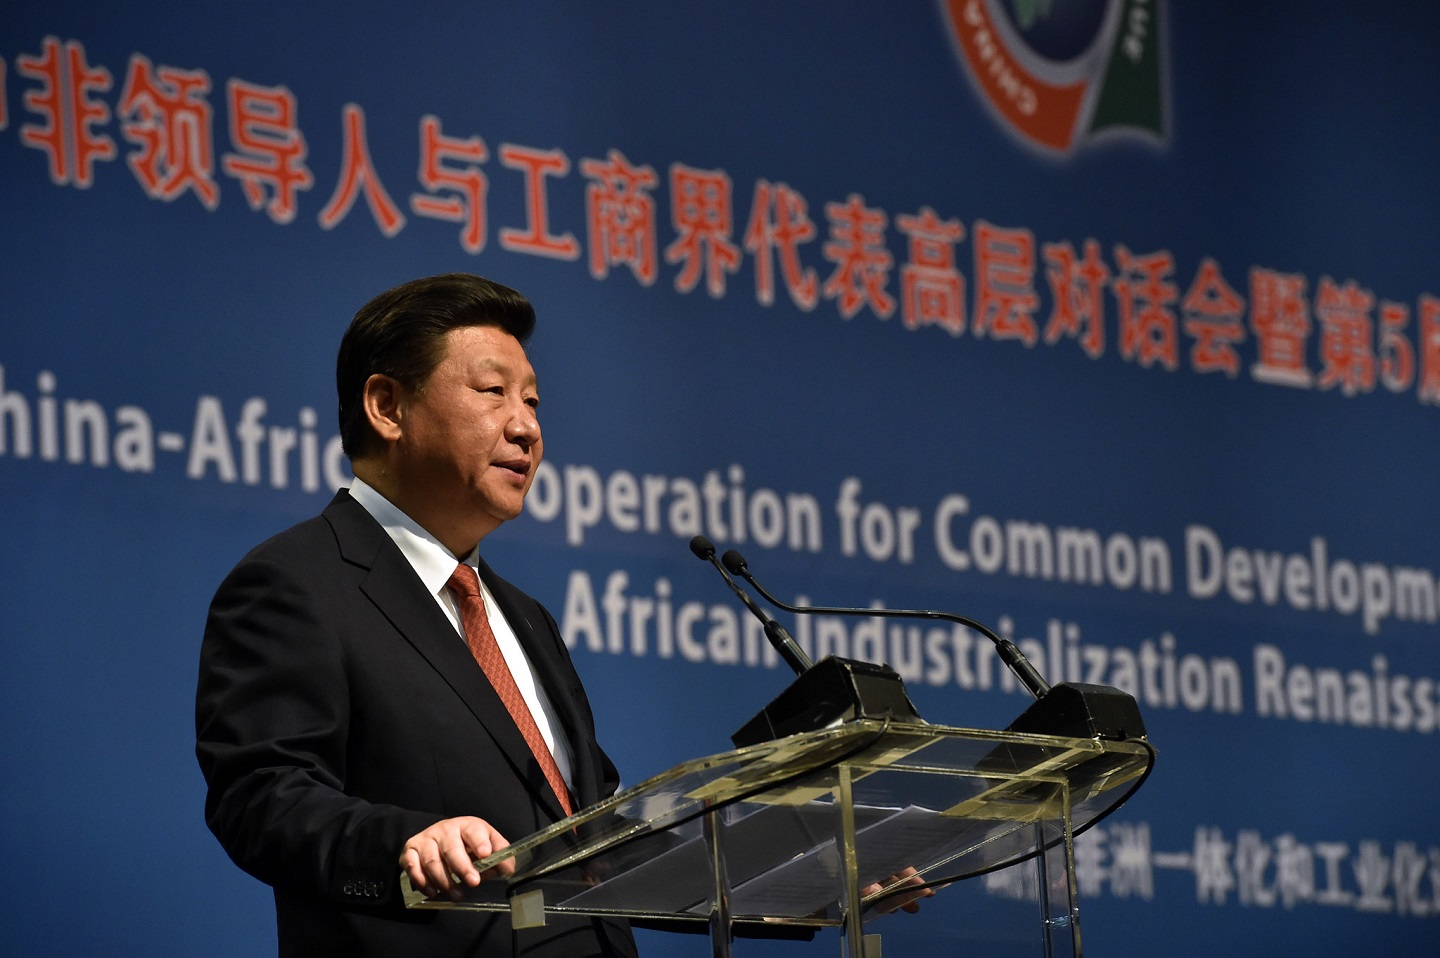 Chinese President Xi Jinping speaks at the Forum on China–Africa Cooperation in 2015. Established in 2000, the FOCAC summit meets every 3 years. In between summits, a follow-up committee of Chinese and African institutions implements and monitors a wide range of programs. (Photo: GCIS.)